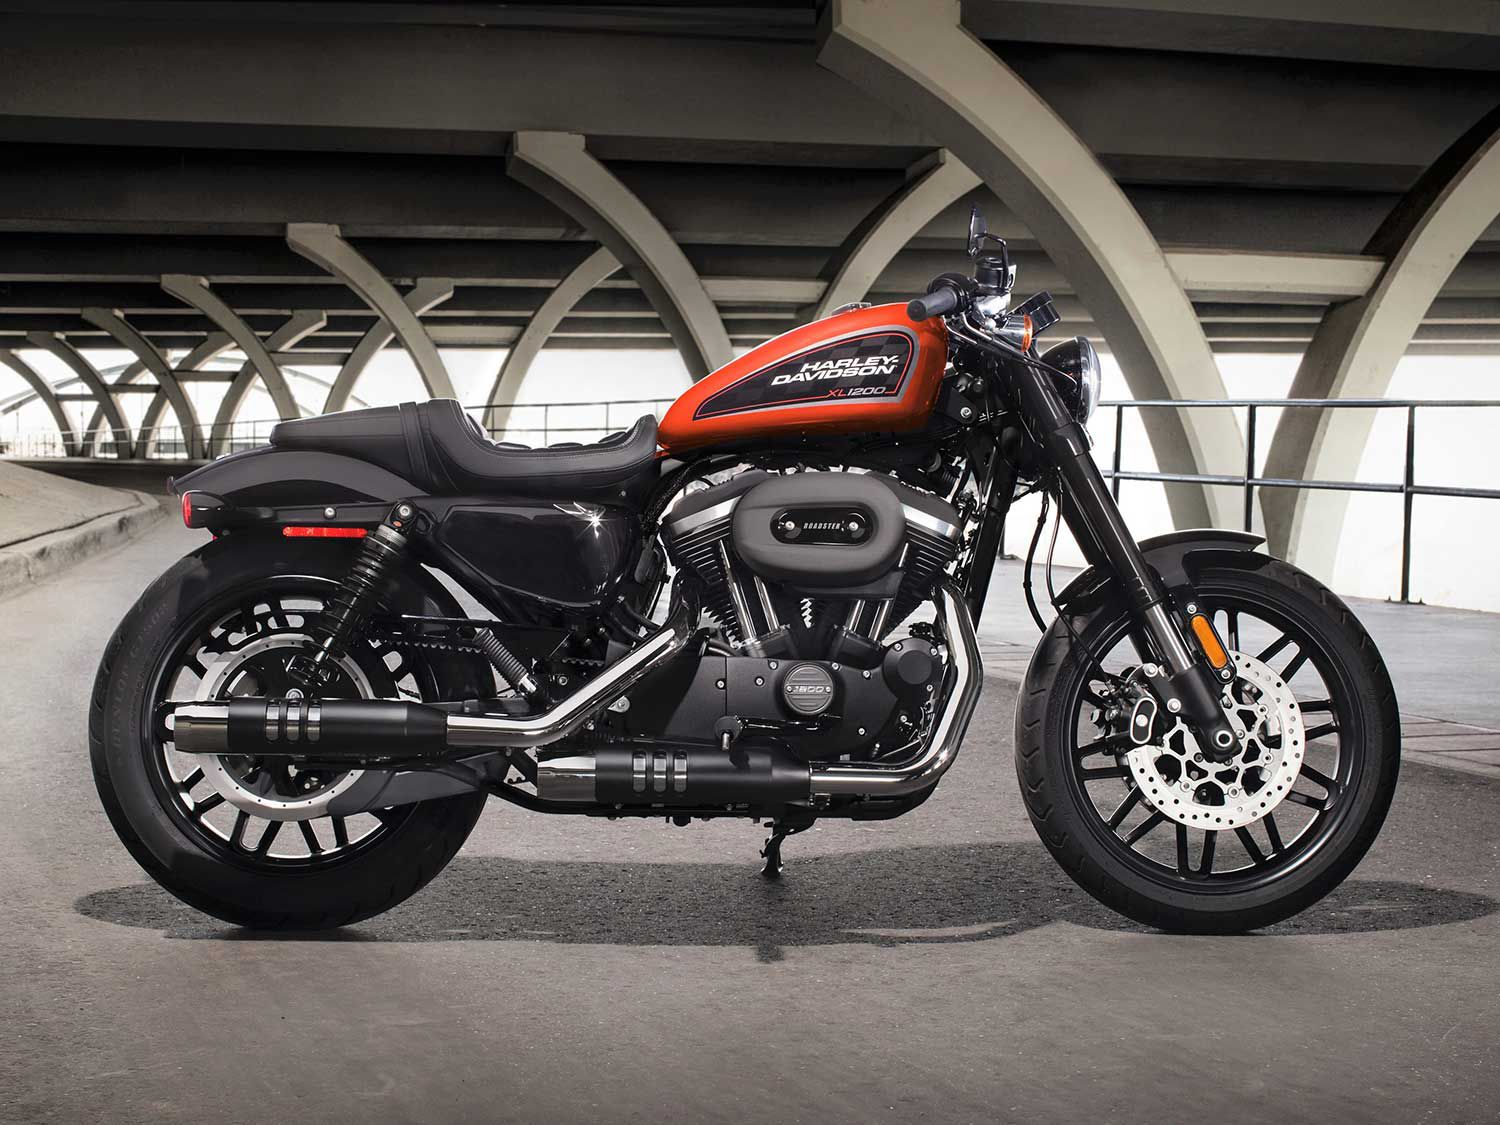 H-D?s sportiest Sportster, the Roadster, also didn?t make the cut for 2021, but three other Sportsters are left in the line (for now).